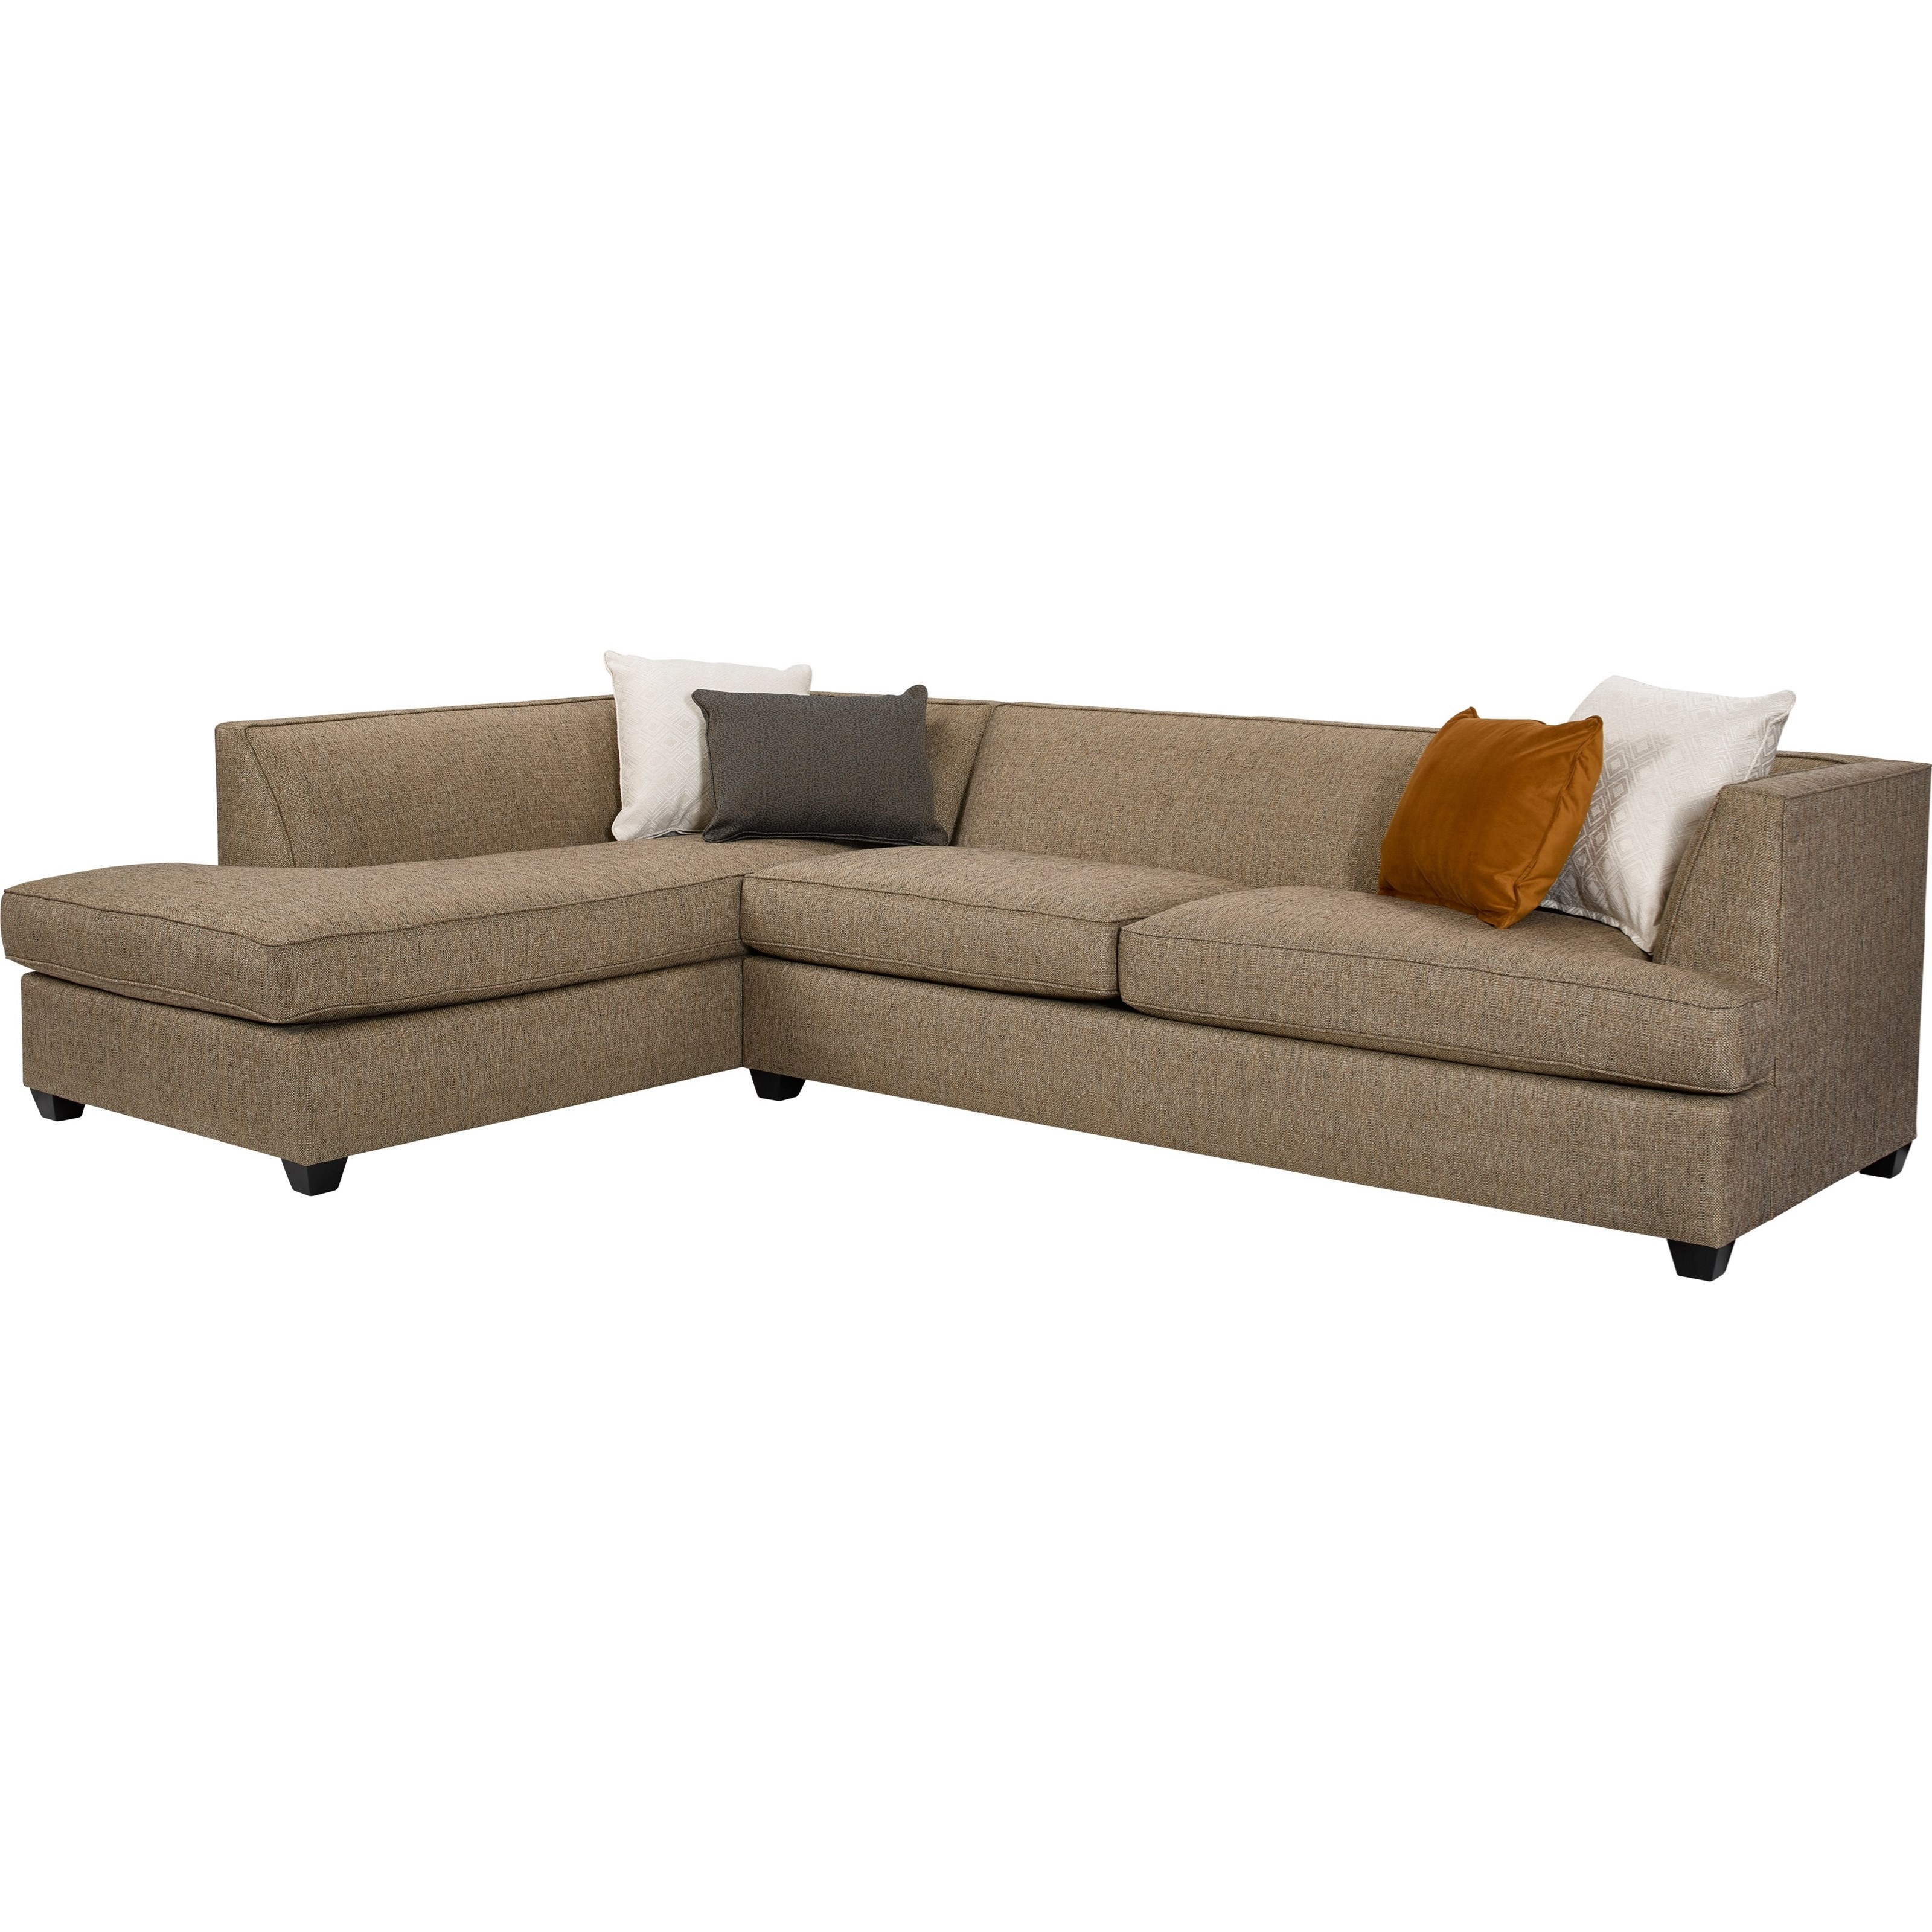 Broyhill furniture farida 2 piece sectional sofa with laf for Broyhill chaise lounge